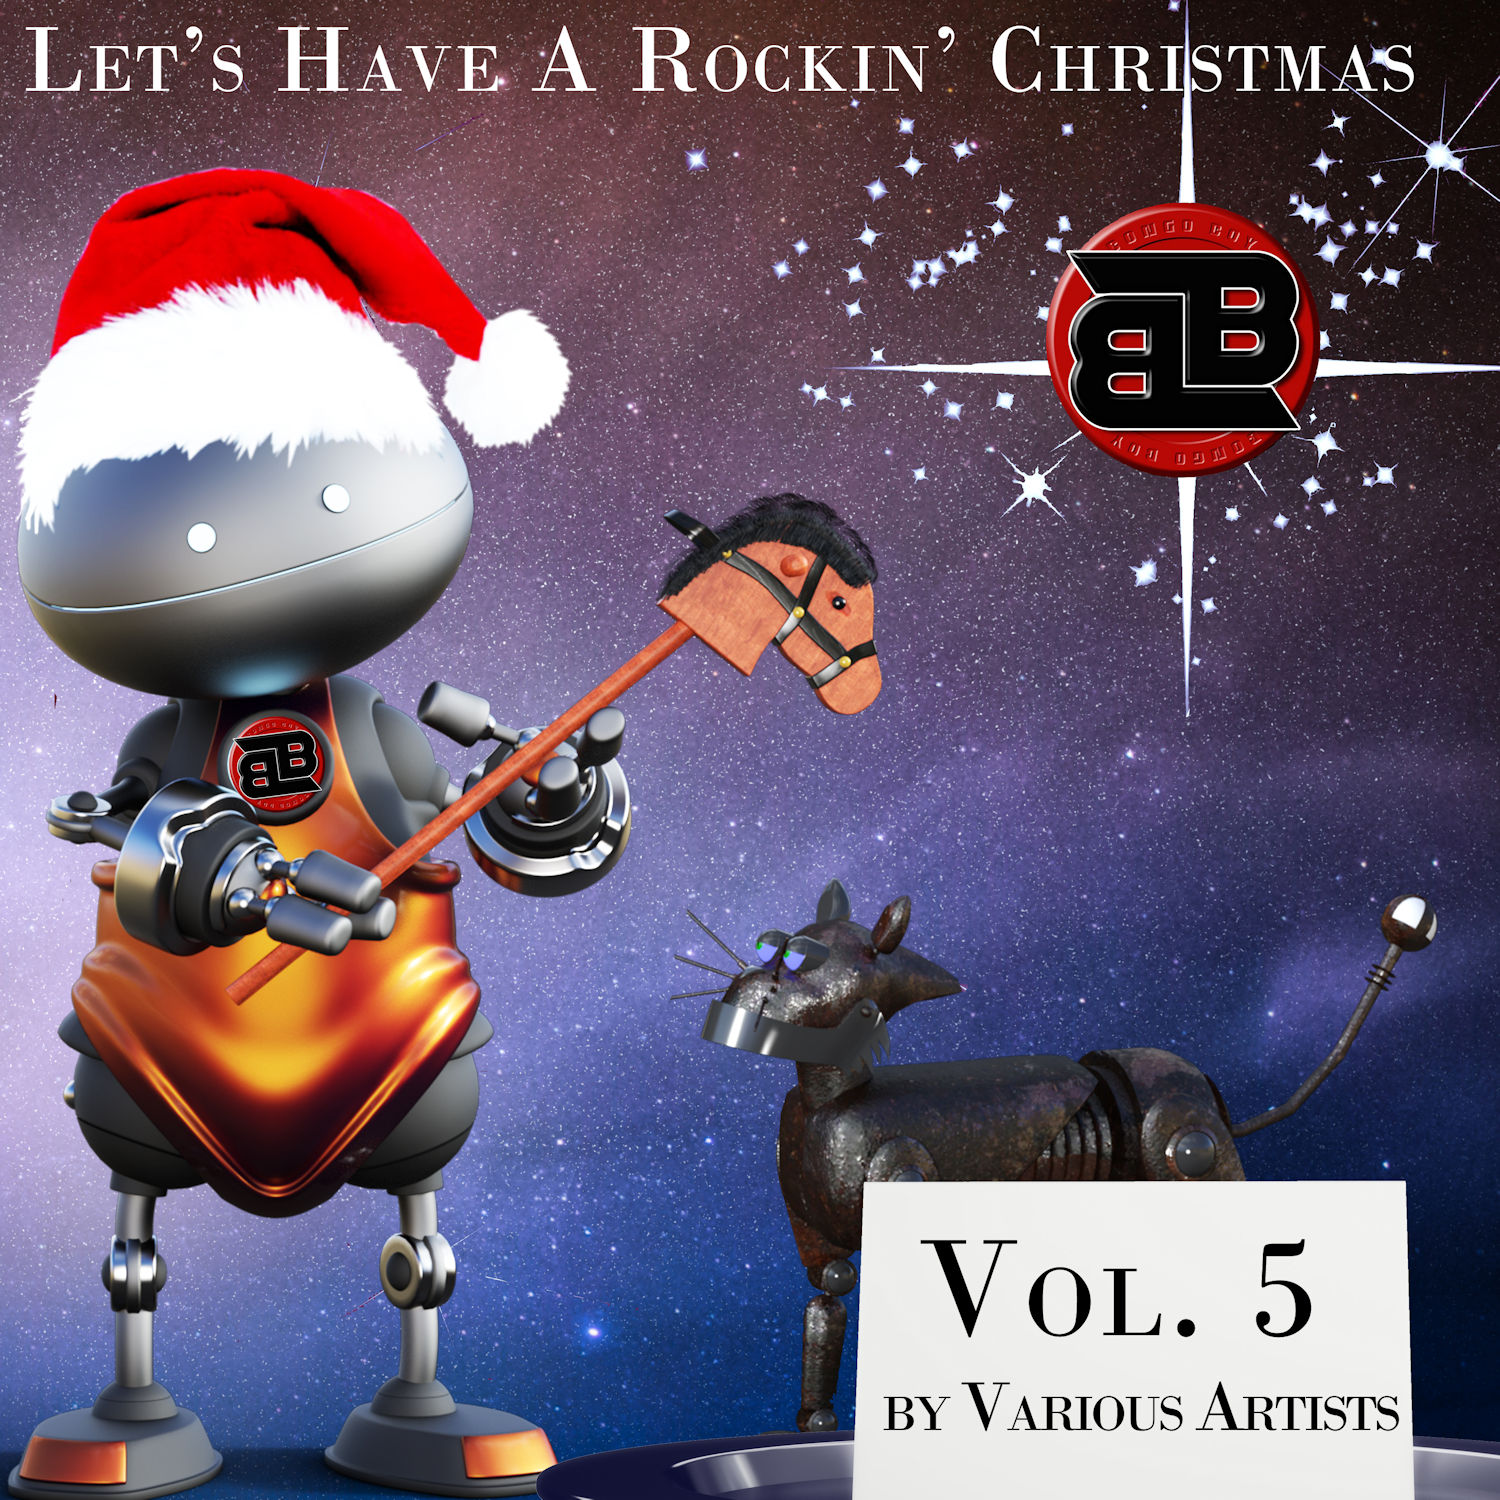 Vol 5 Let's Have A Rockin Christmas   The Holiday Album by Various Artists